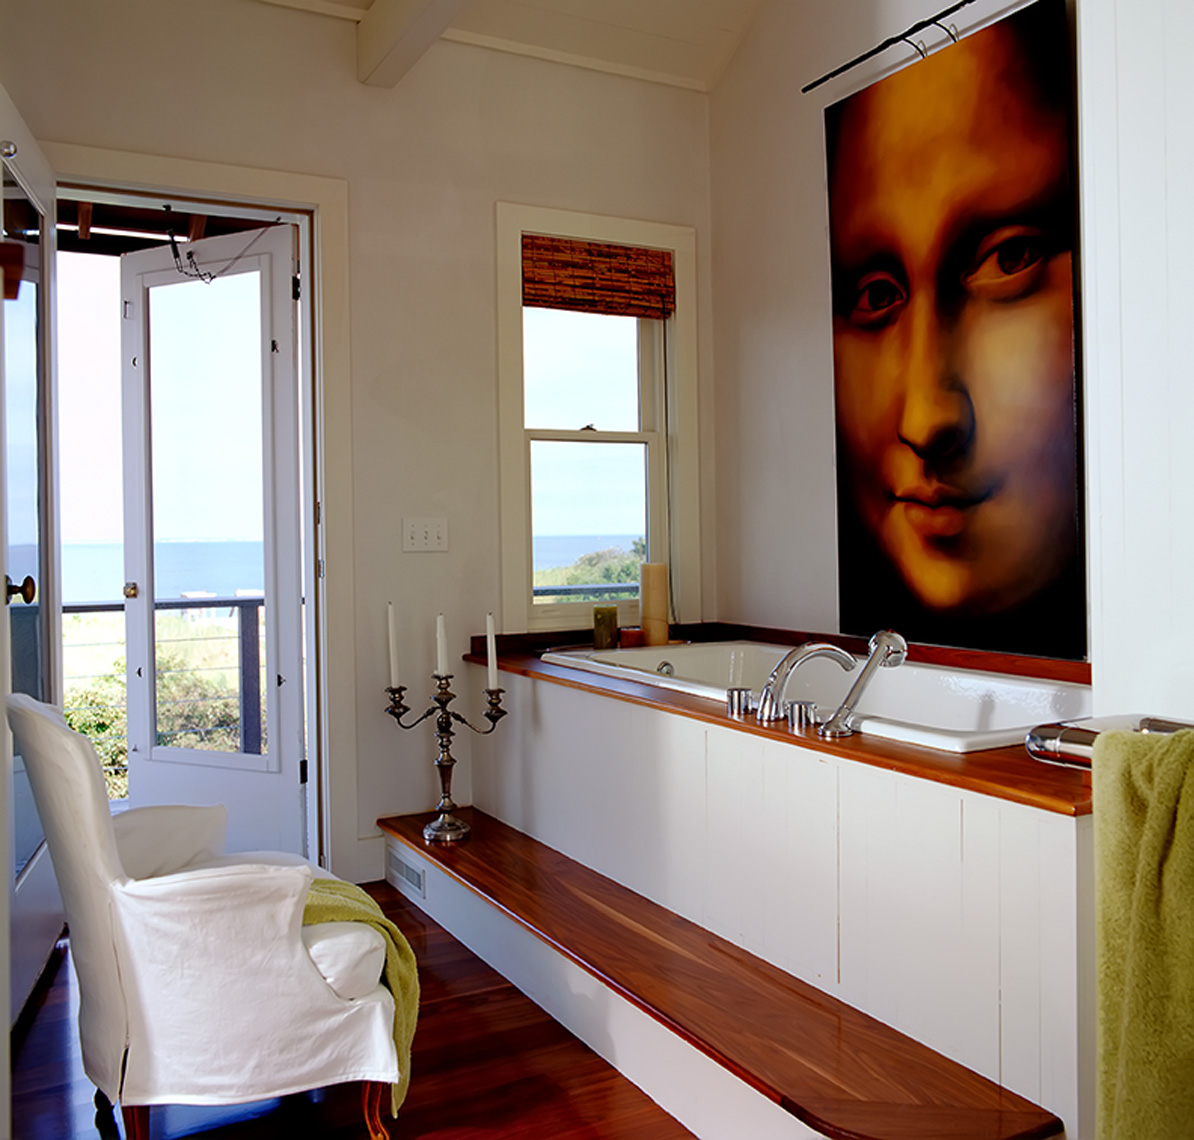 mona_lisa_painting over modern bath tub